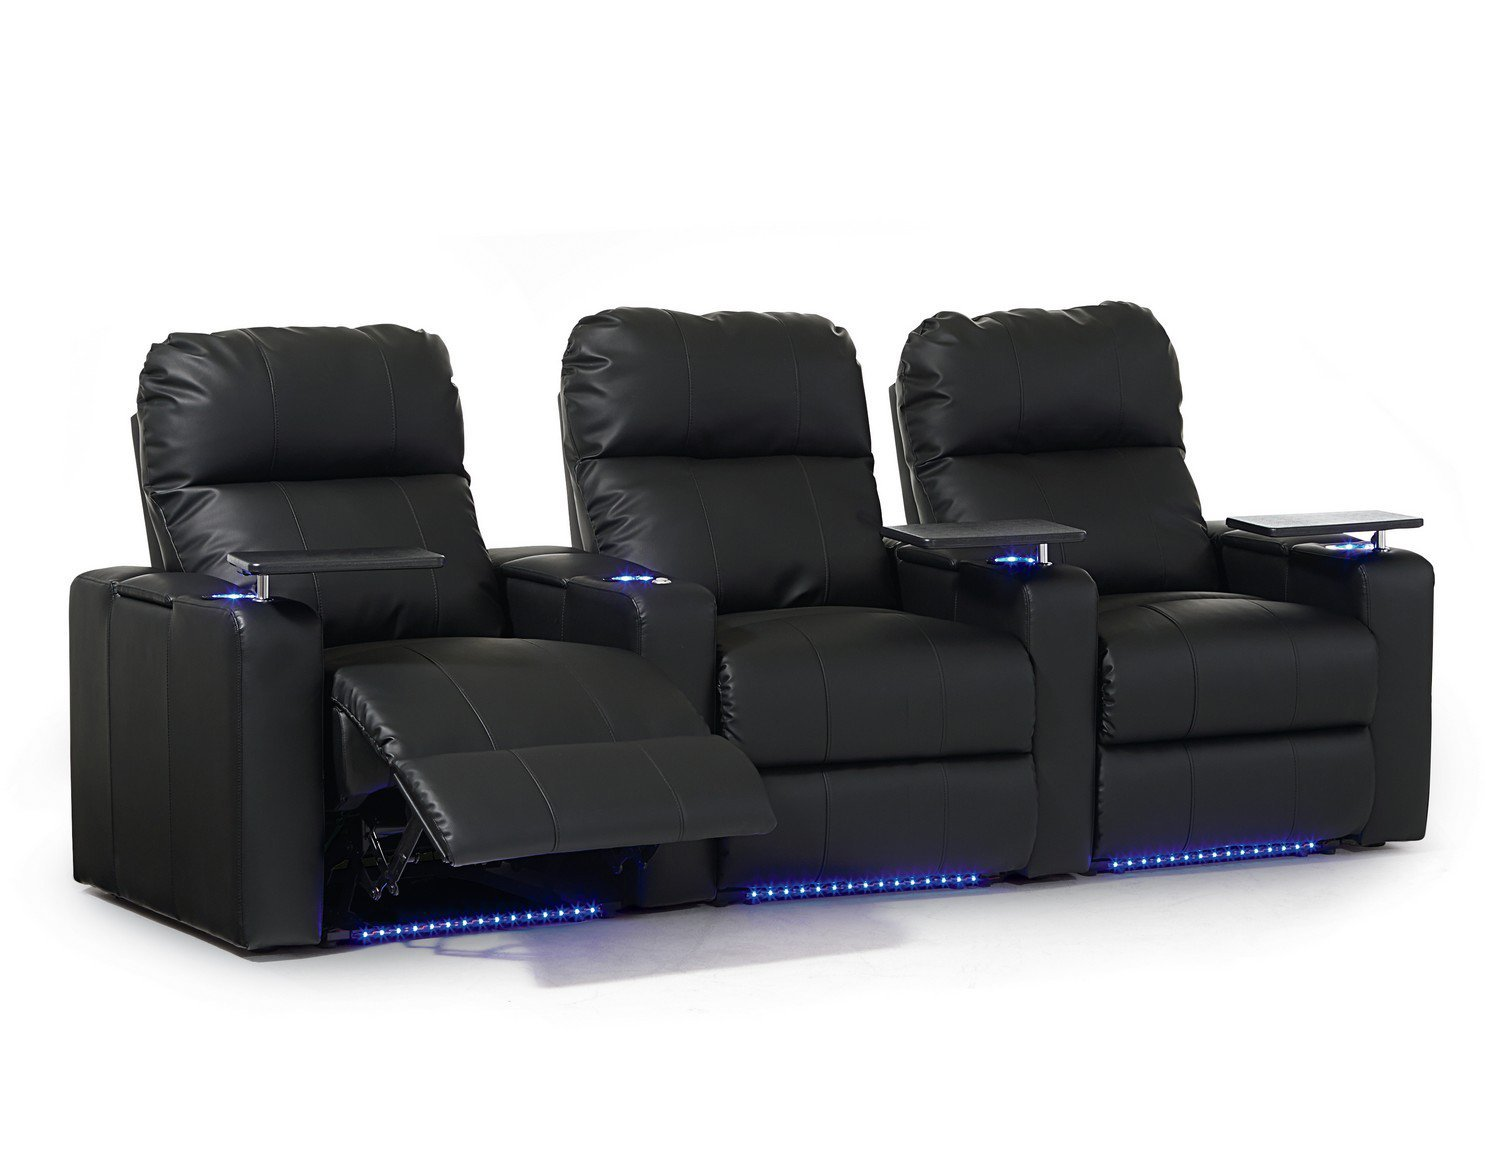 Home seating theater chairs Home theater furniture amazon